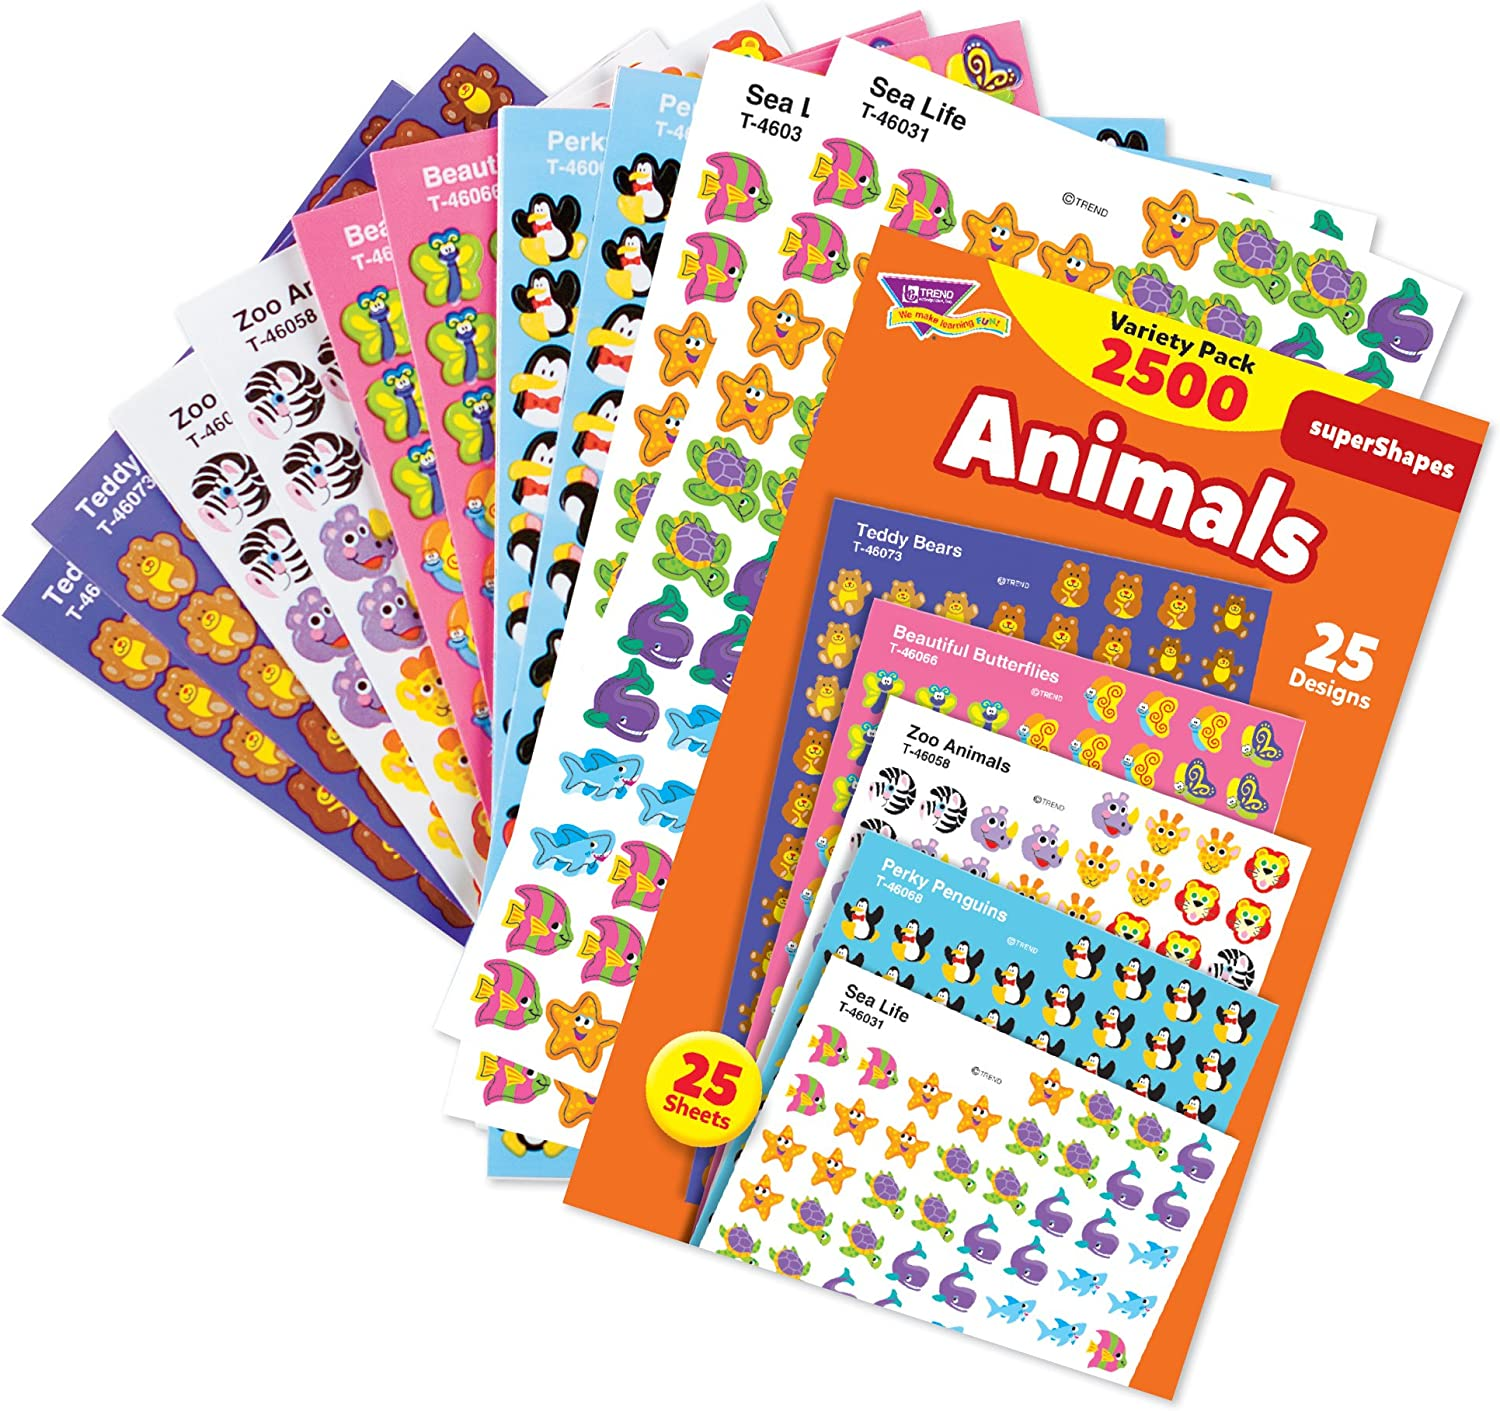 Trend Enterprises Super Shapes Animal Stickers Incentive Variety Pack 13 32 In Pack Of 2500 T 46904 Themed Classroom Displays And Decoration Office Products